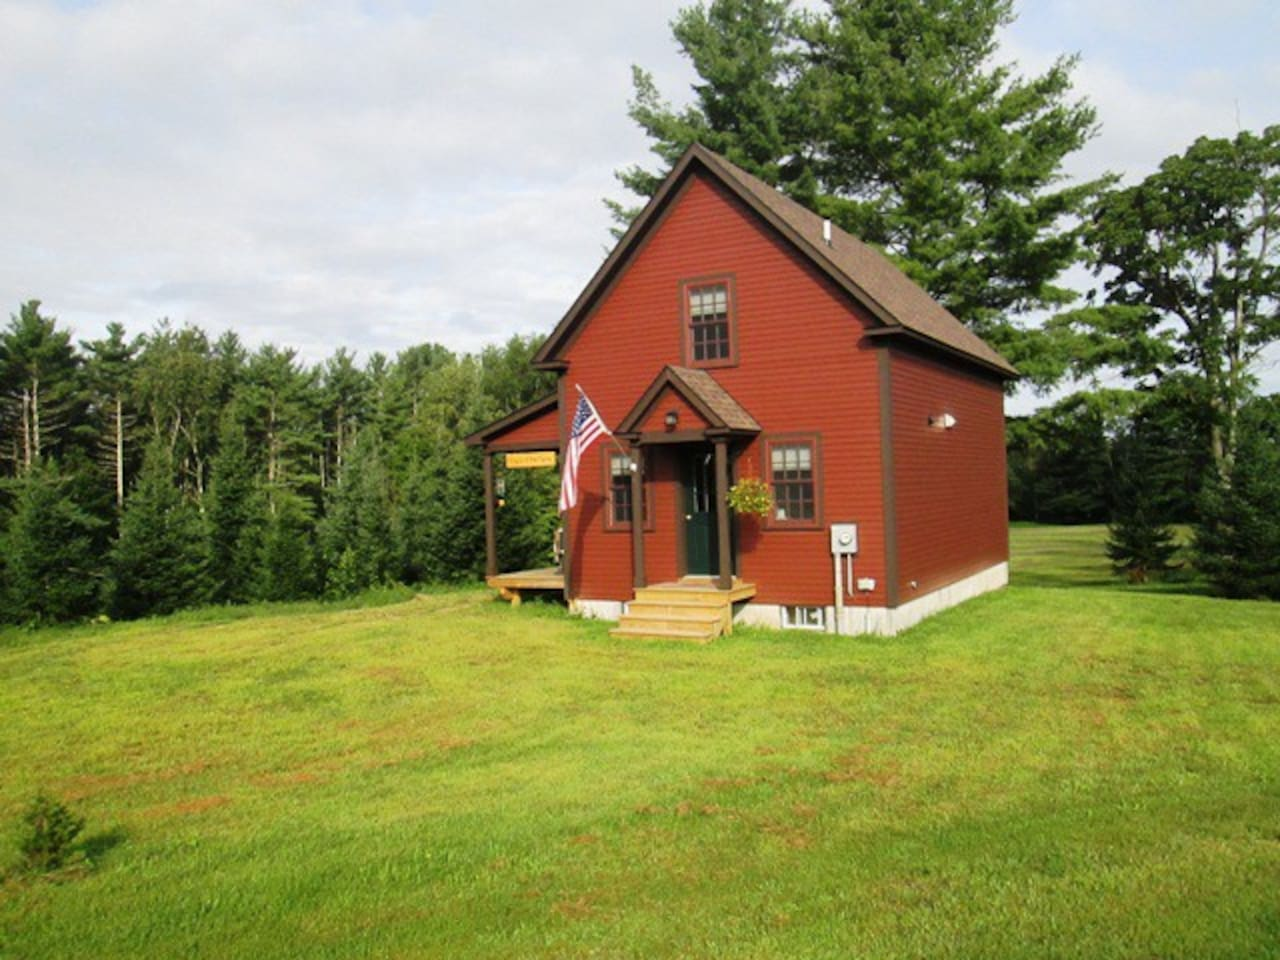 Peace of the Farm tall cabin:private, peaceful, brand new construction and ready to host.